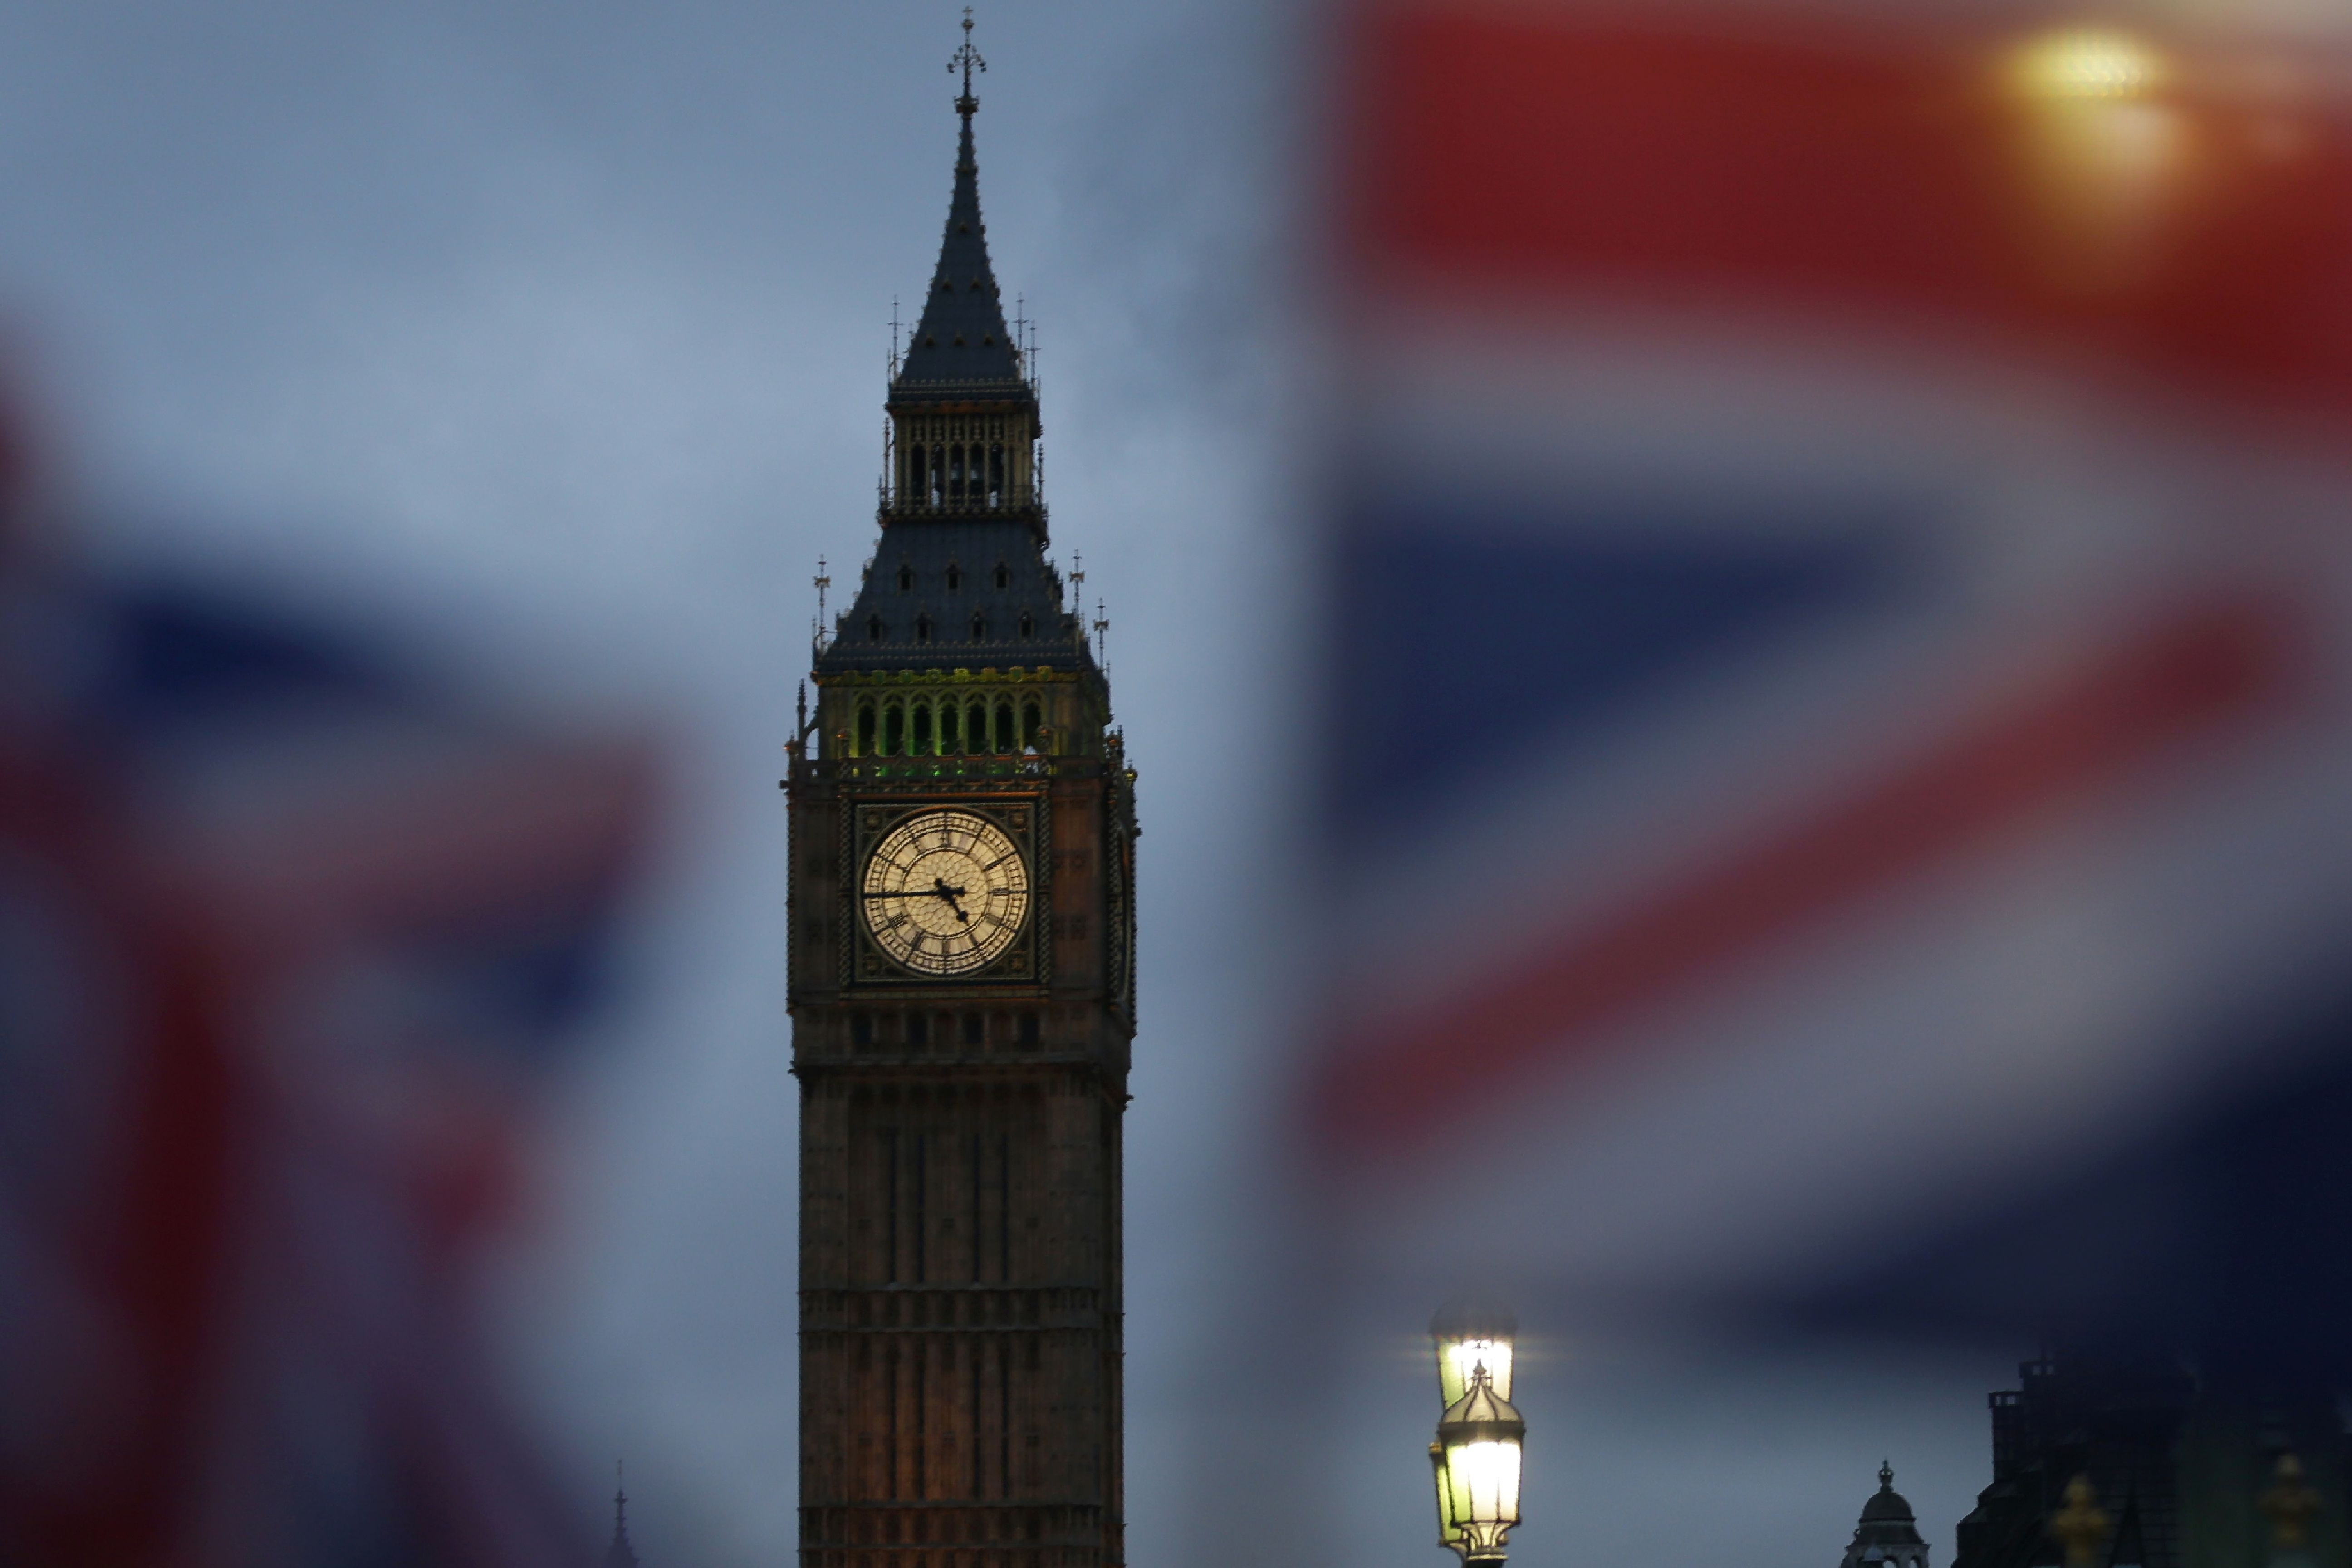 Union flags fly near the The Elizabeth Tower, commonly known Big Ben, and the Houses of Parliament in London on February 1, 2017. British MPs are expected Wednesday to approve the first stage of a bill empowering Prime Minister Theresa May to start pulling Britain out of the European Union. Ahead of the vote, which was scheduled to take place at 7:00 pm (1900 GMT), MPs were debating the legislation which would allow the government to trigger Article 50 of the EU\'s Lisbon Treaty, formally beginning two years of exit negotiations. / AFP PHOTO / Daniel LEAL-OLIVAS